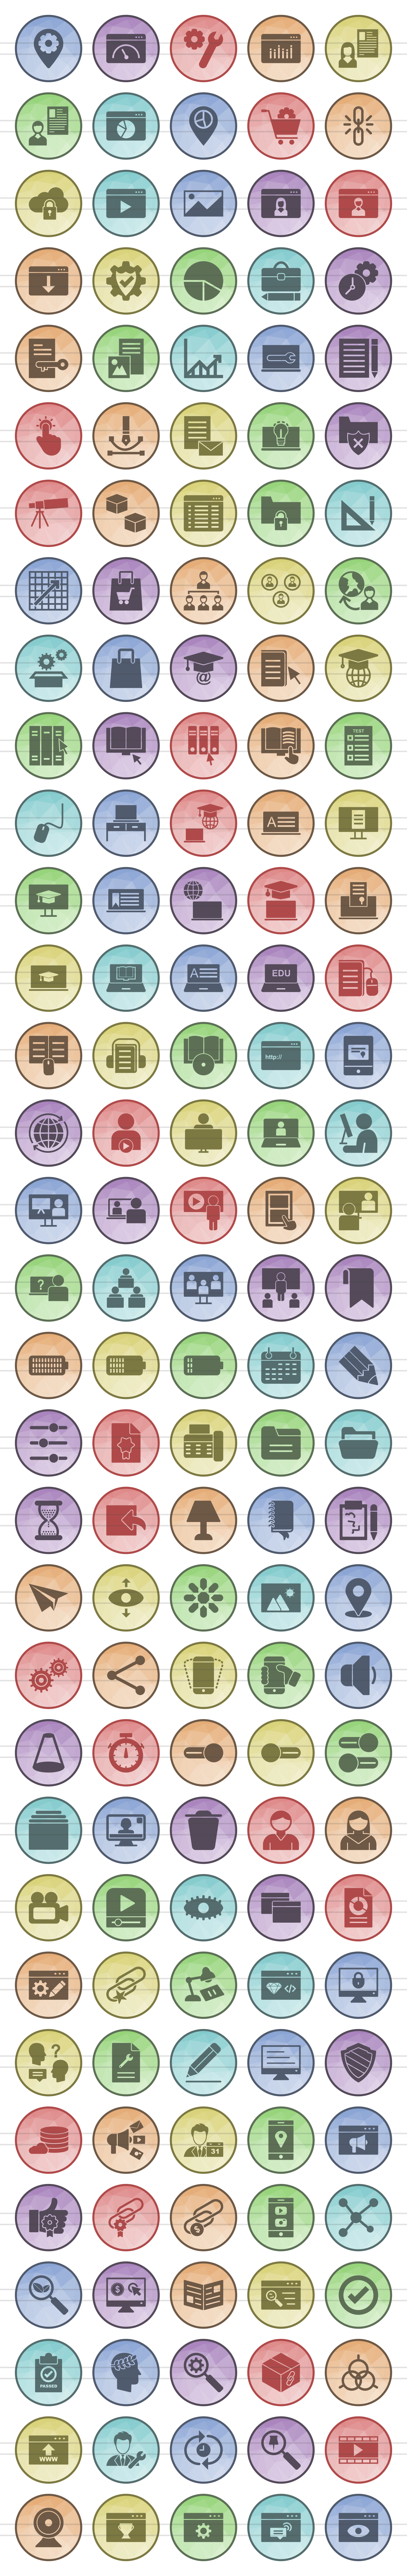 166 Web Filled Low Poly Icons example image 2